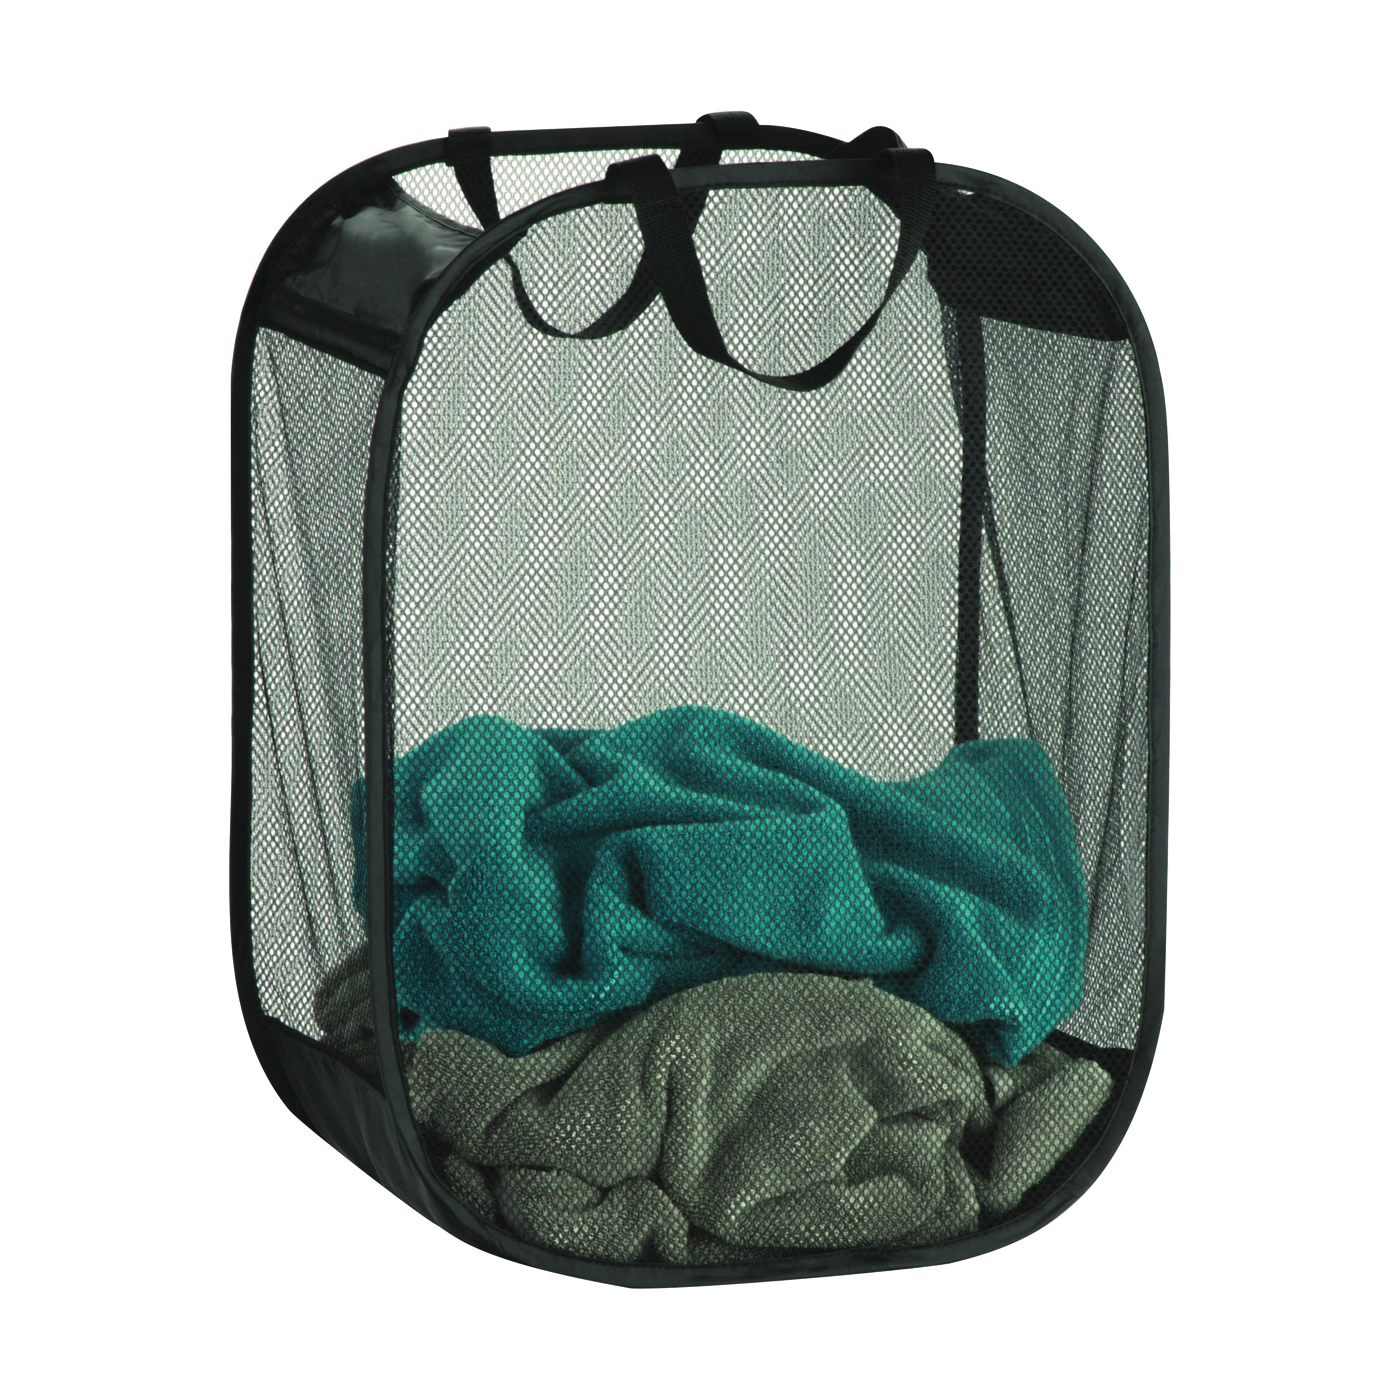 Picture of Honey-Can-Do HMP-03891 Mesh Hamper, Fabric Bag, Black, 9-3/4 in W, 9 in D